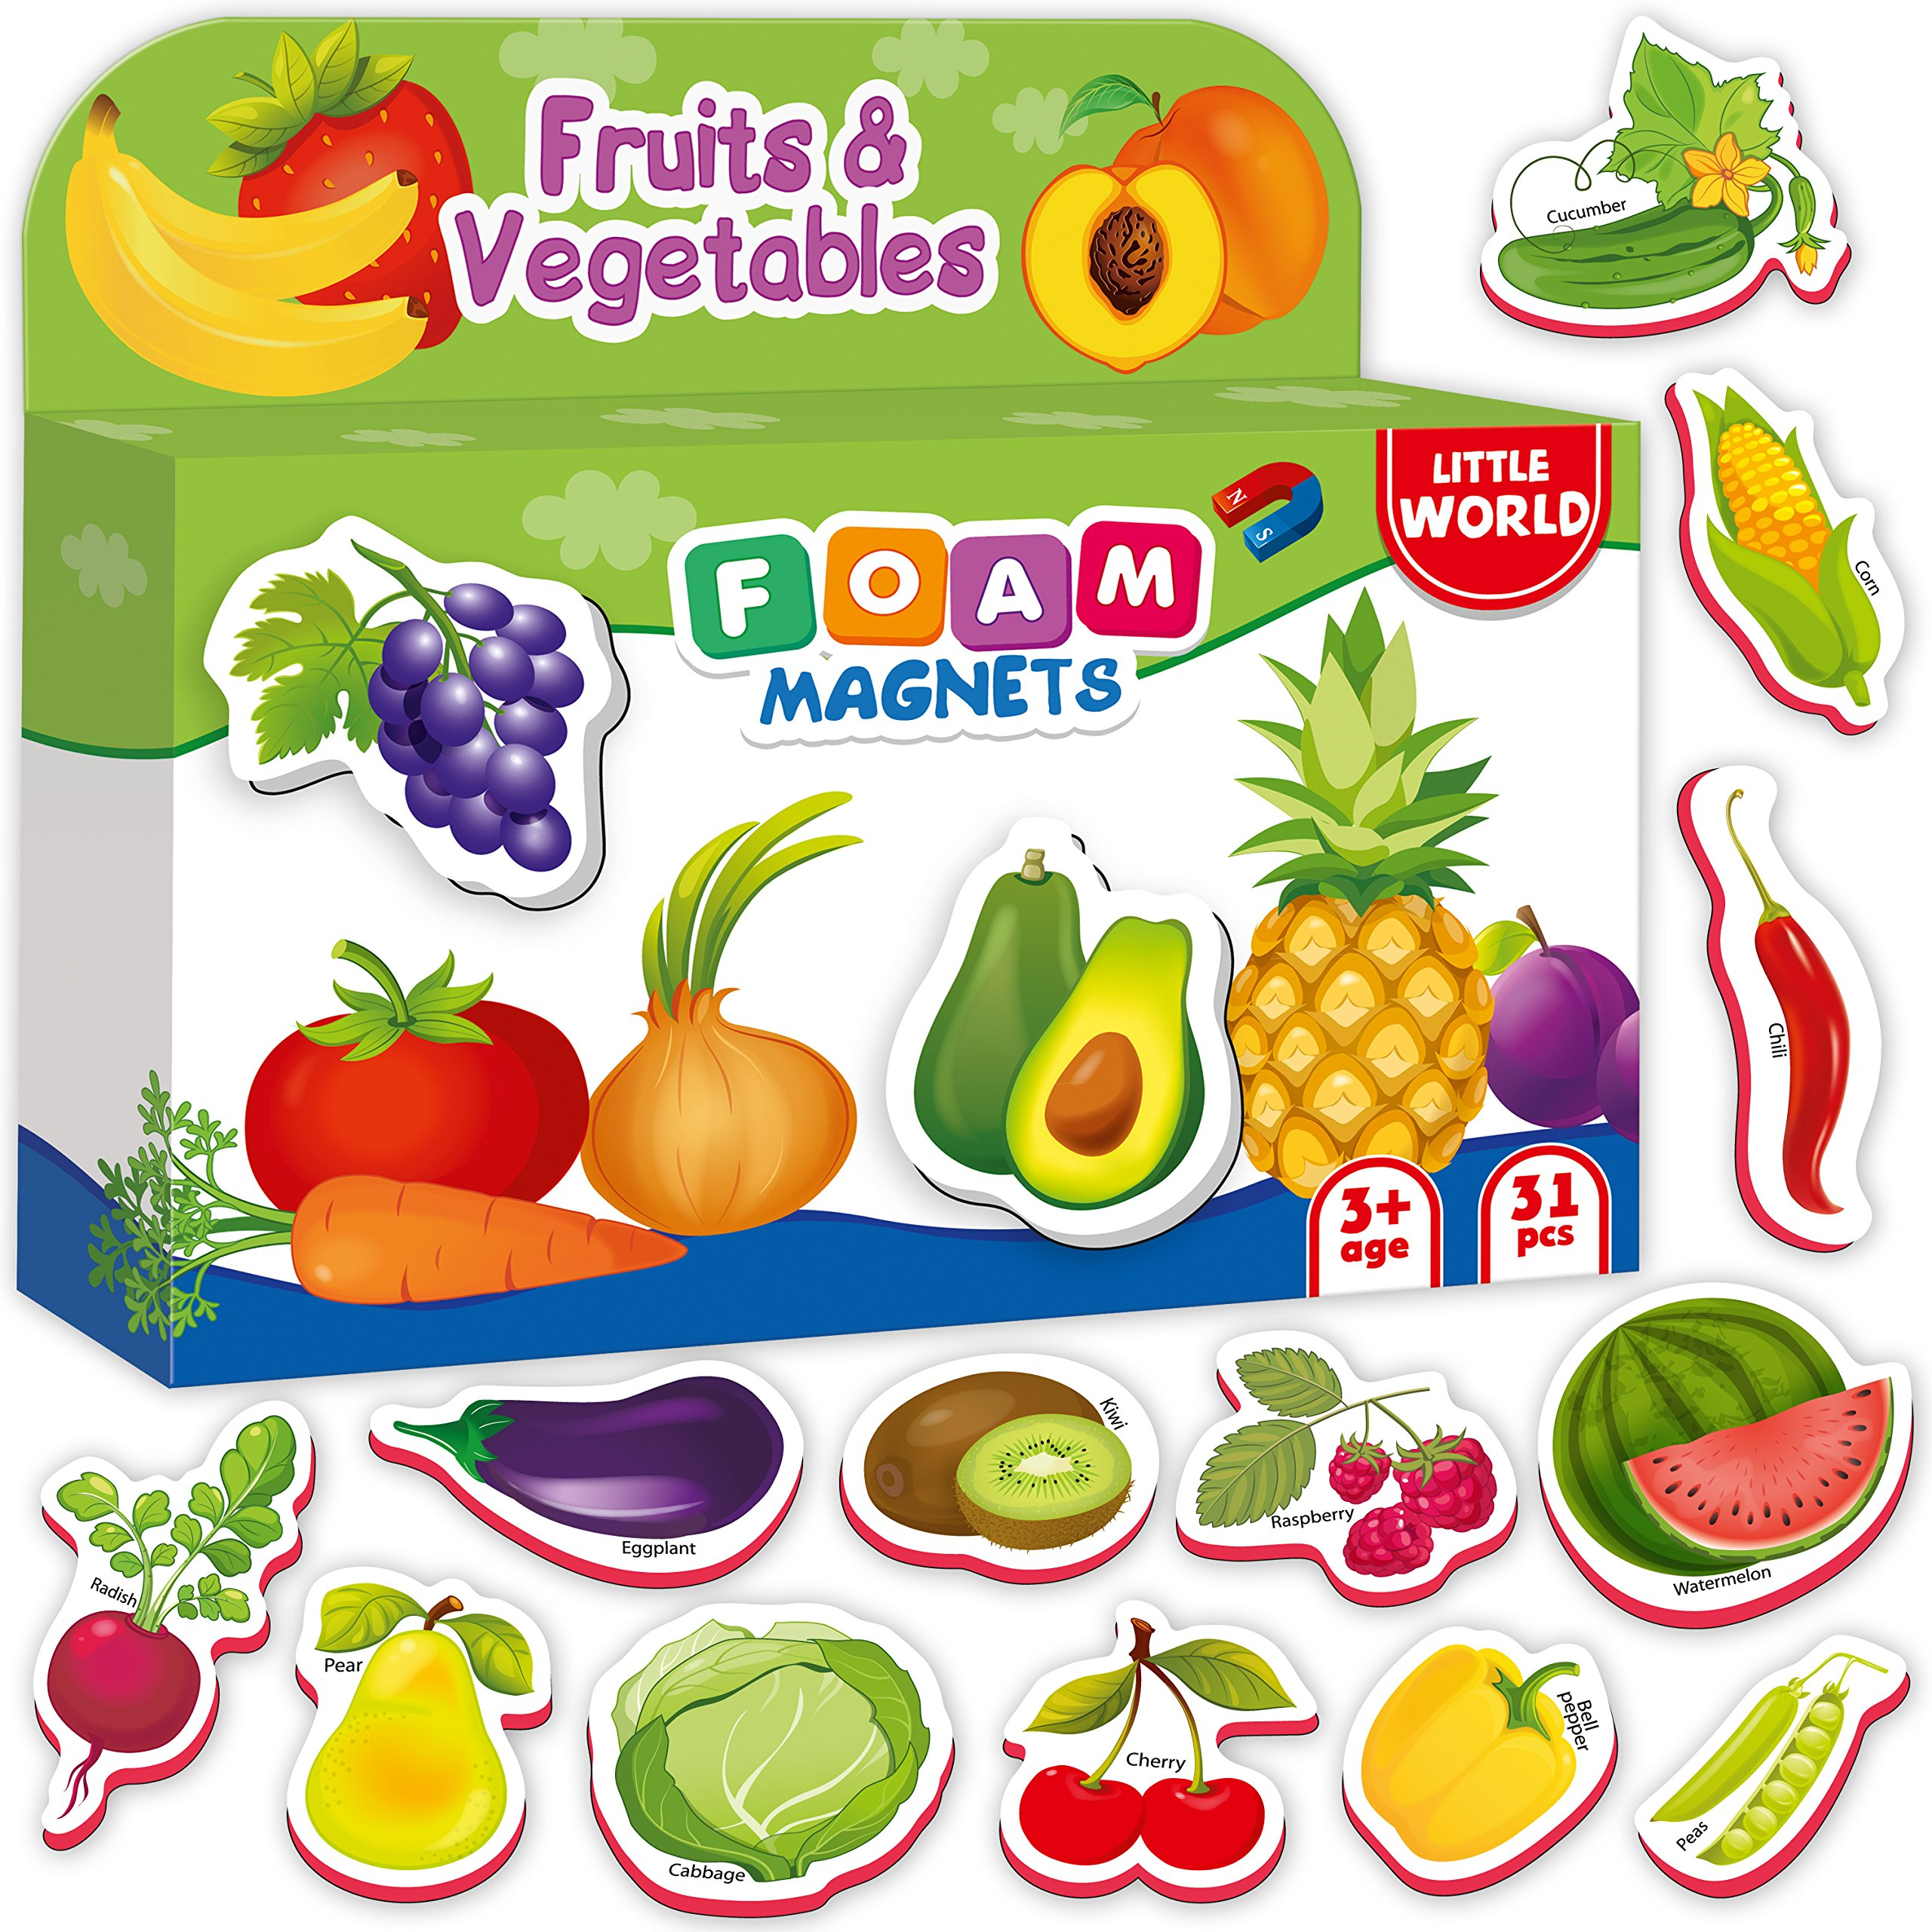 Foam Baby Magnets for Refrigerator Fruits & Veggies 31 pcs - Refrigerator Magnets for Toddlers - Kid Magnets - Fridge Food Magnets for Kids - Children Magnets for Babies Learning Age 1 2 3 old by Little World